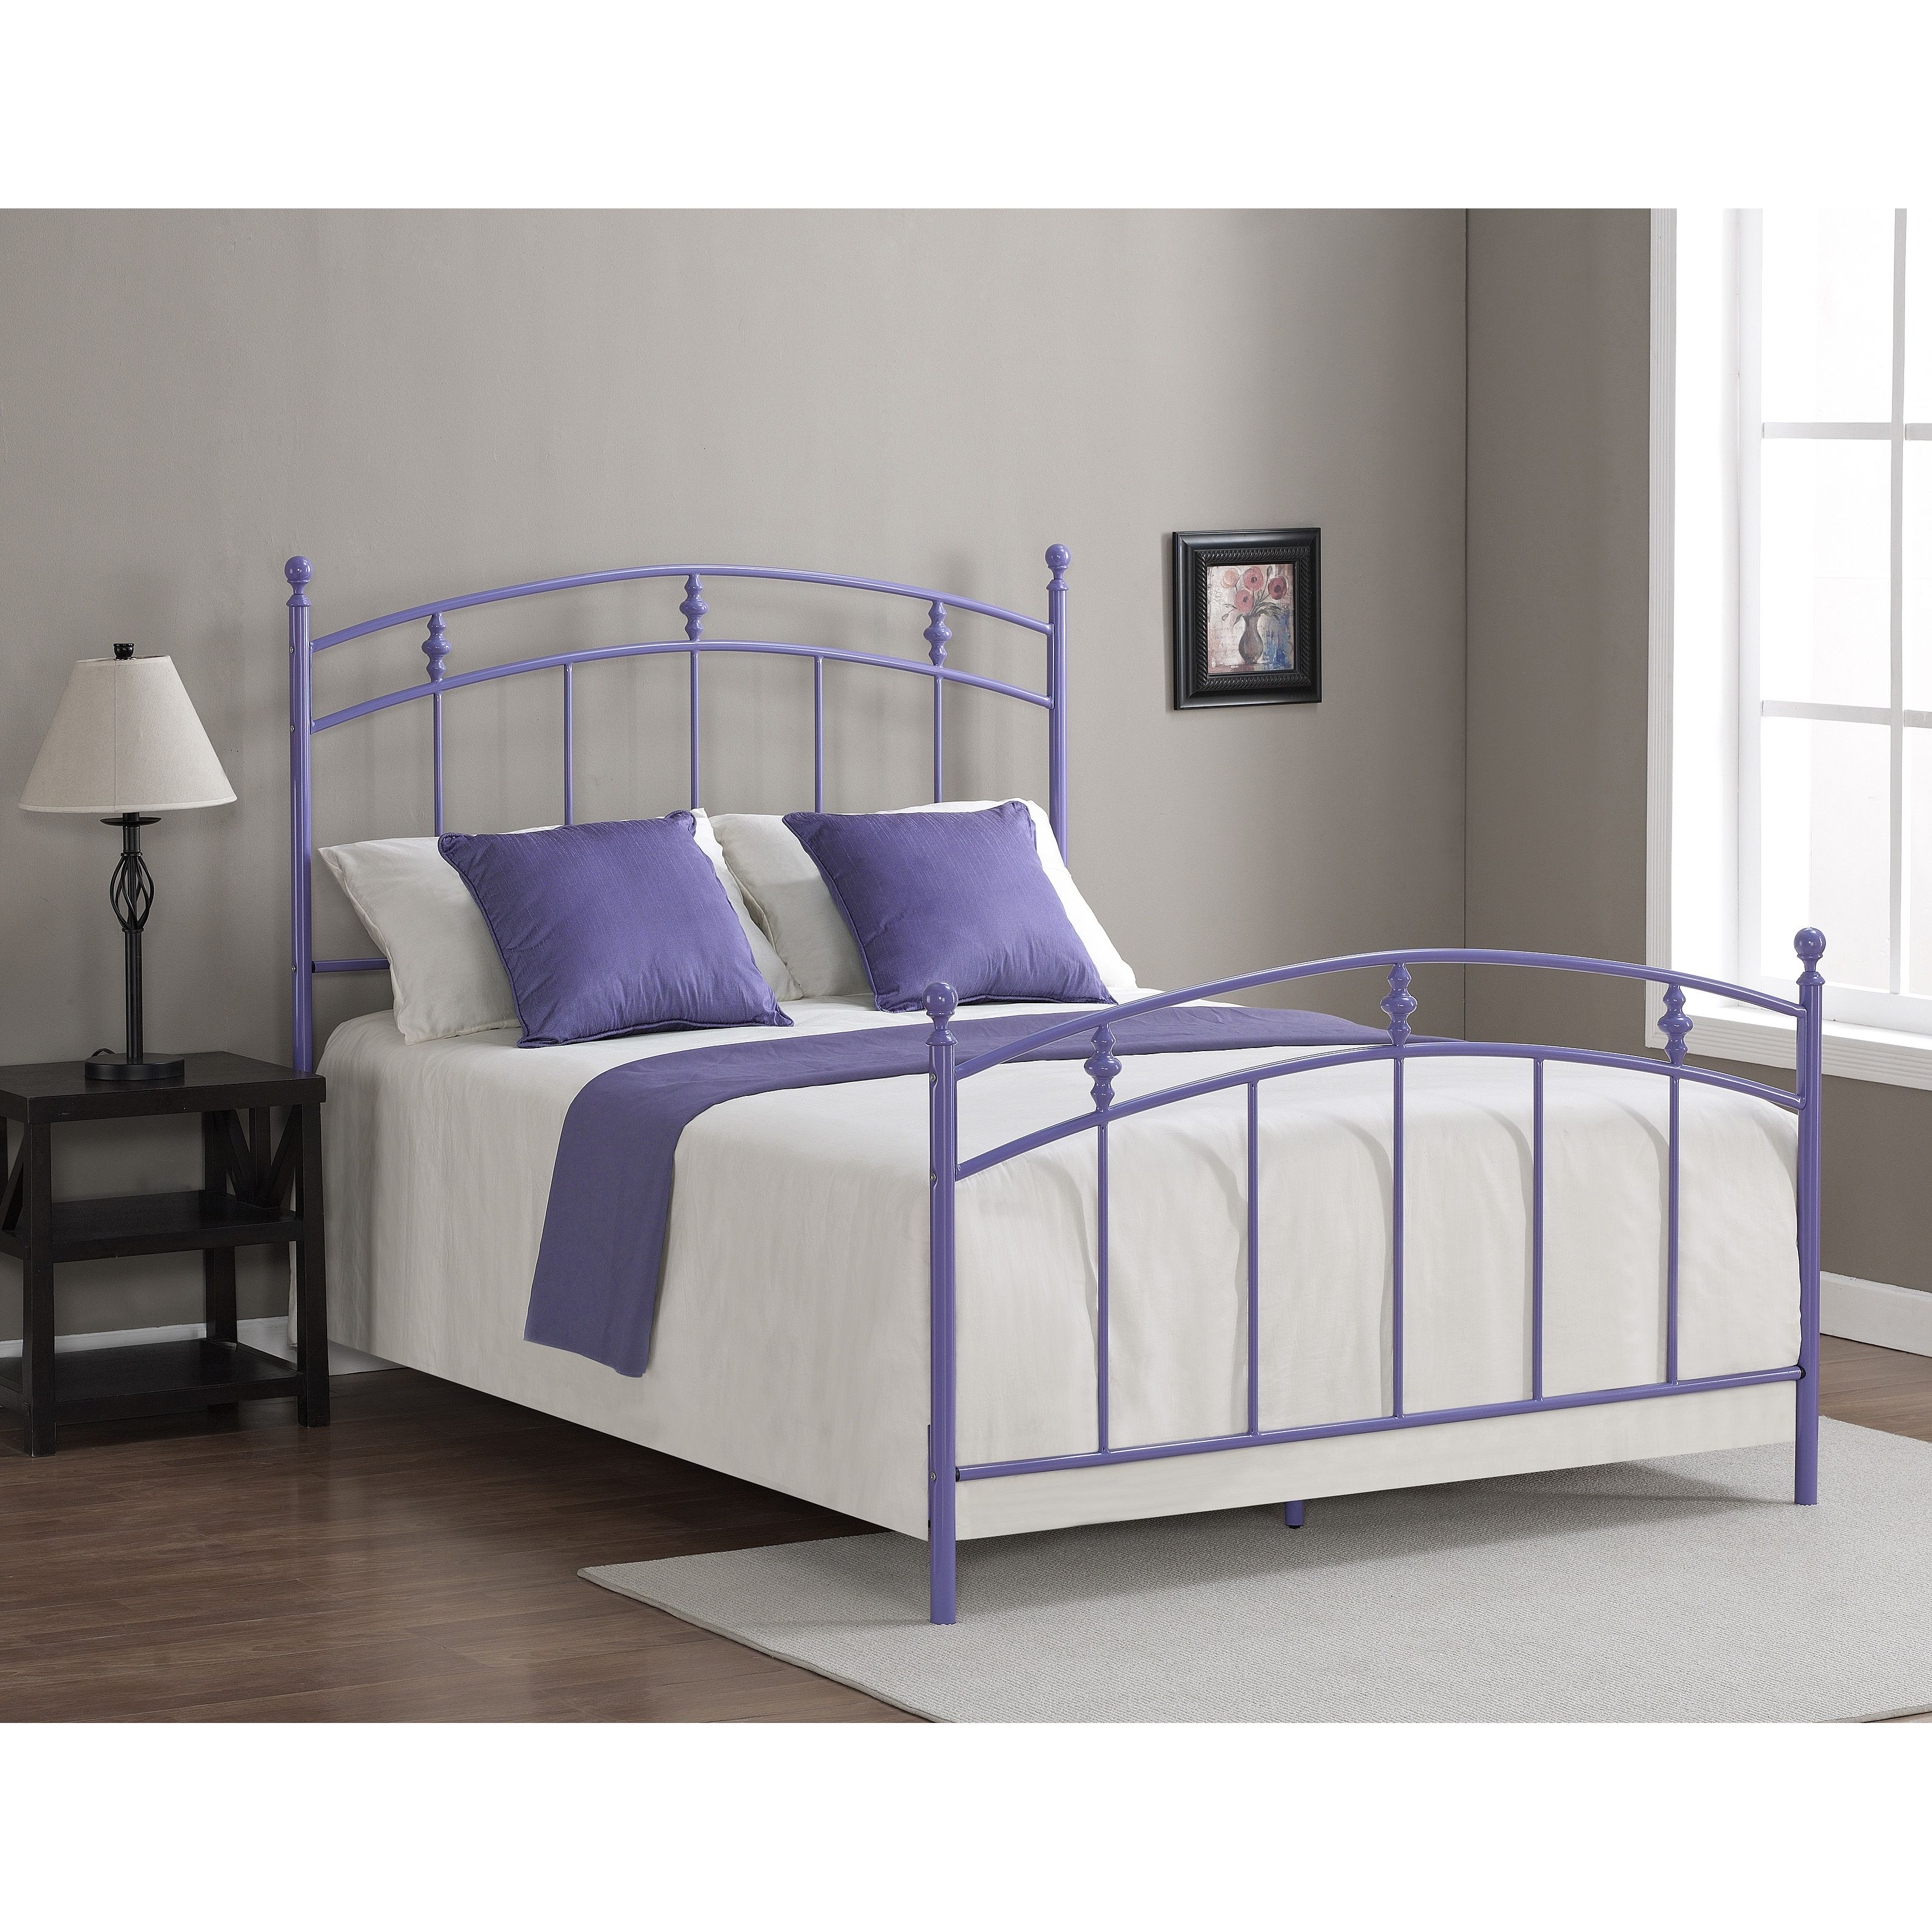 This full size bed frame will add a stylish touch to any